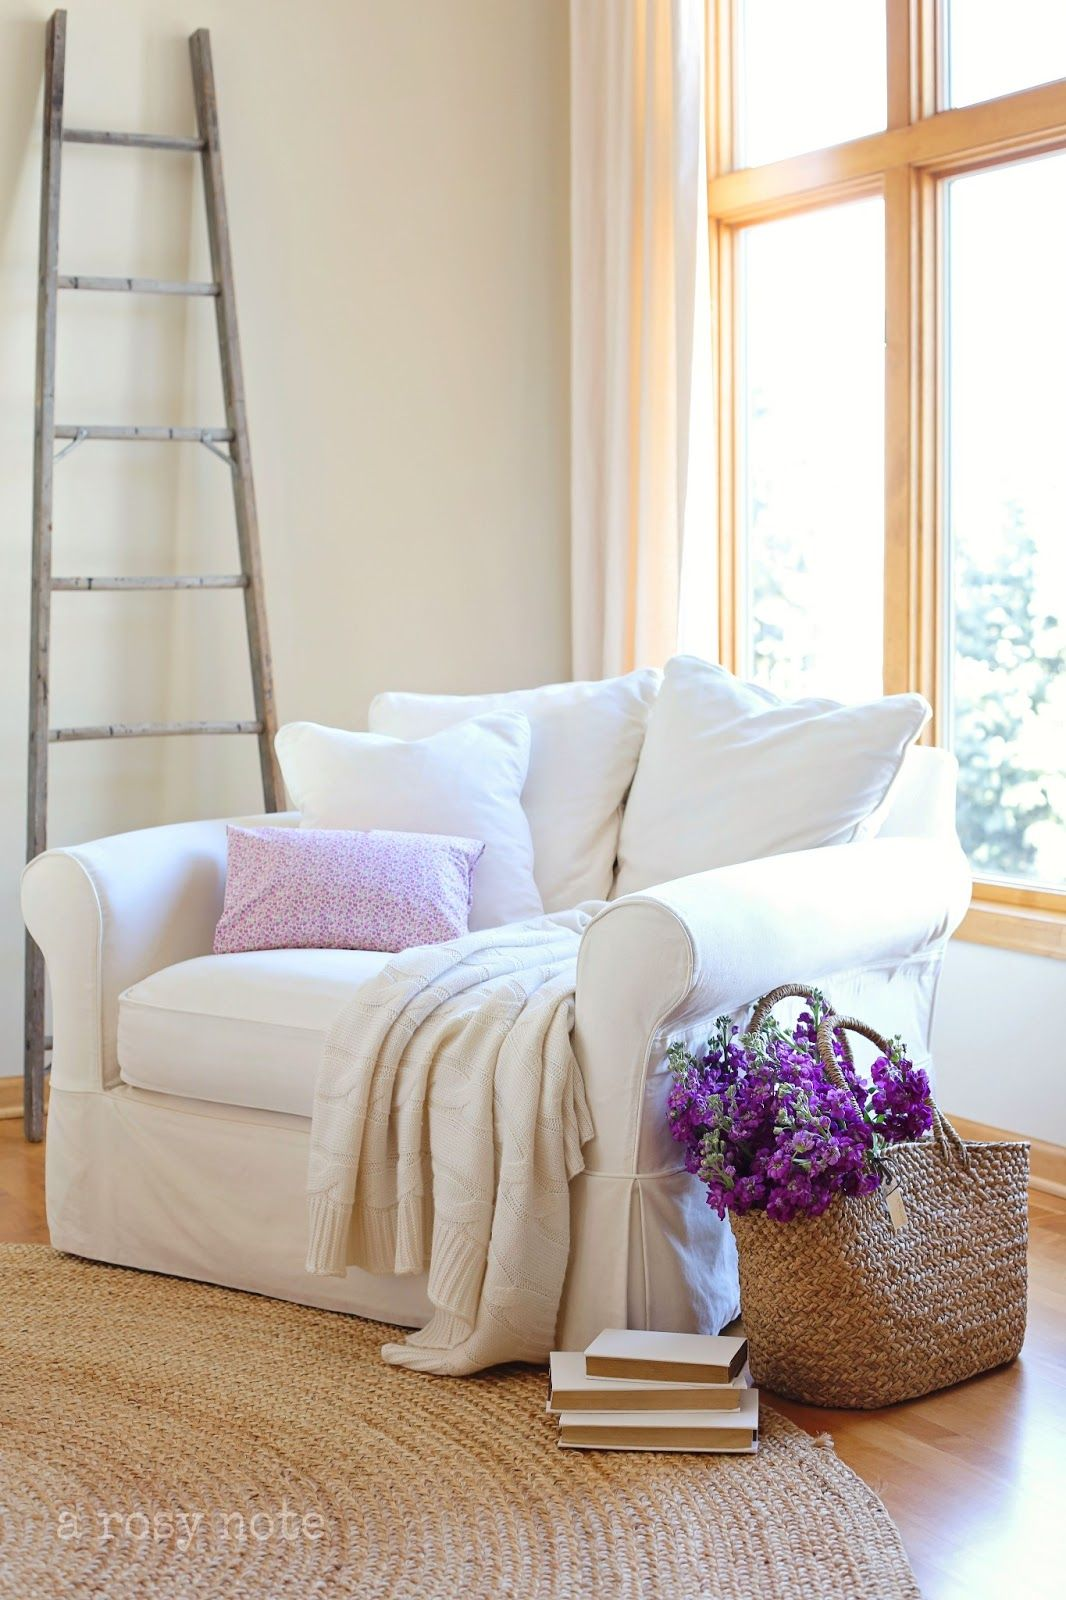 A Rosy Note | Afternoon nap, Reading nooks and Cozy